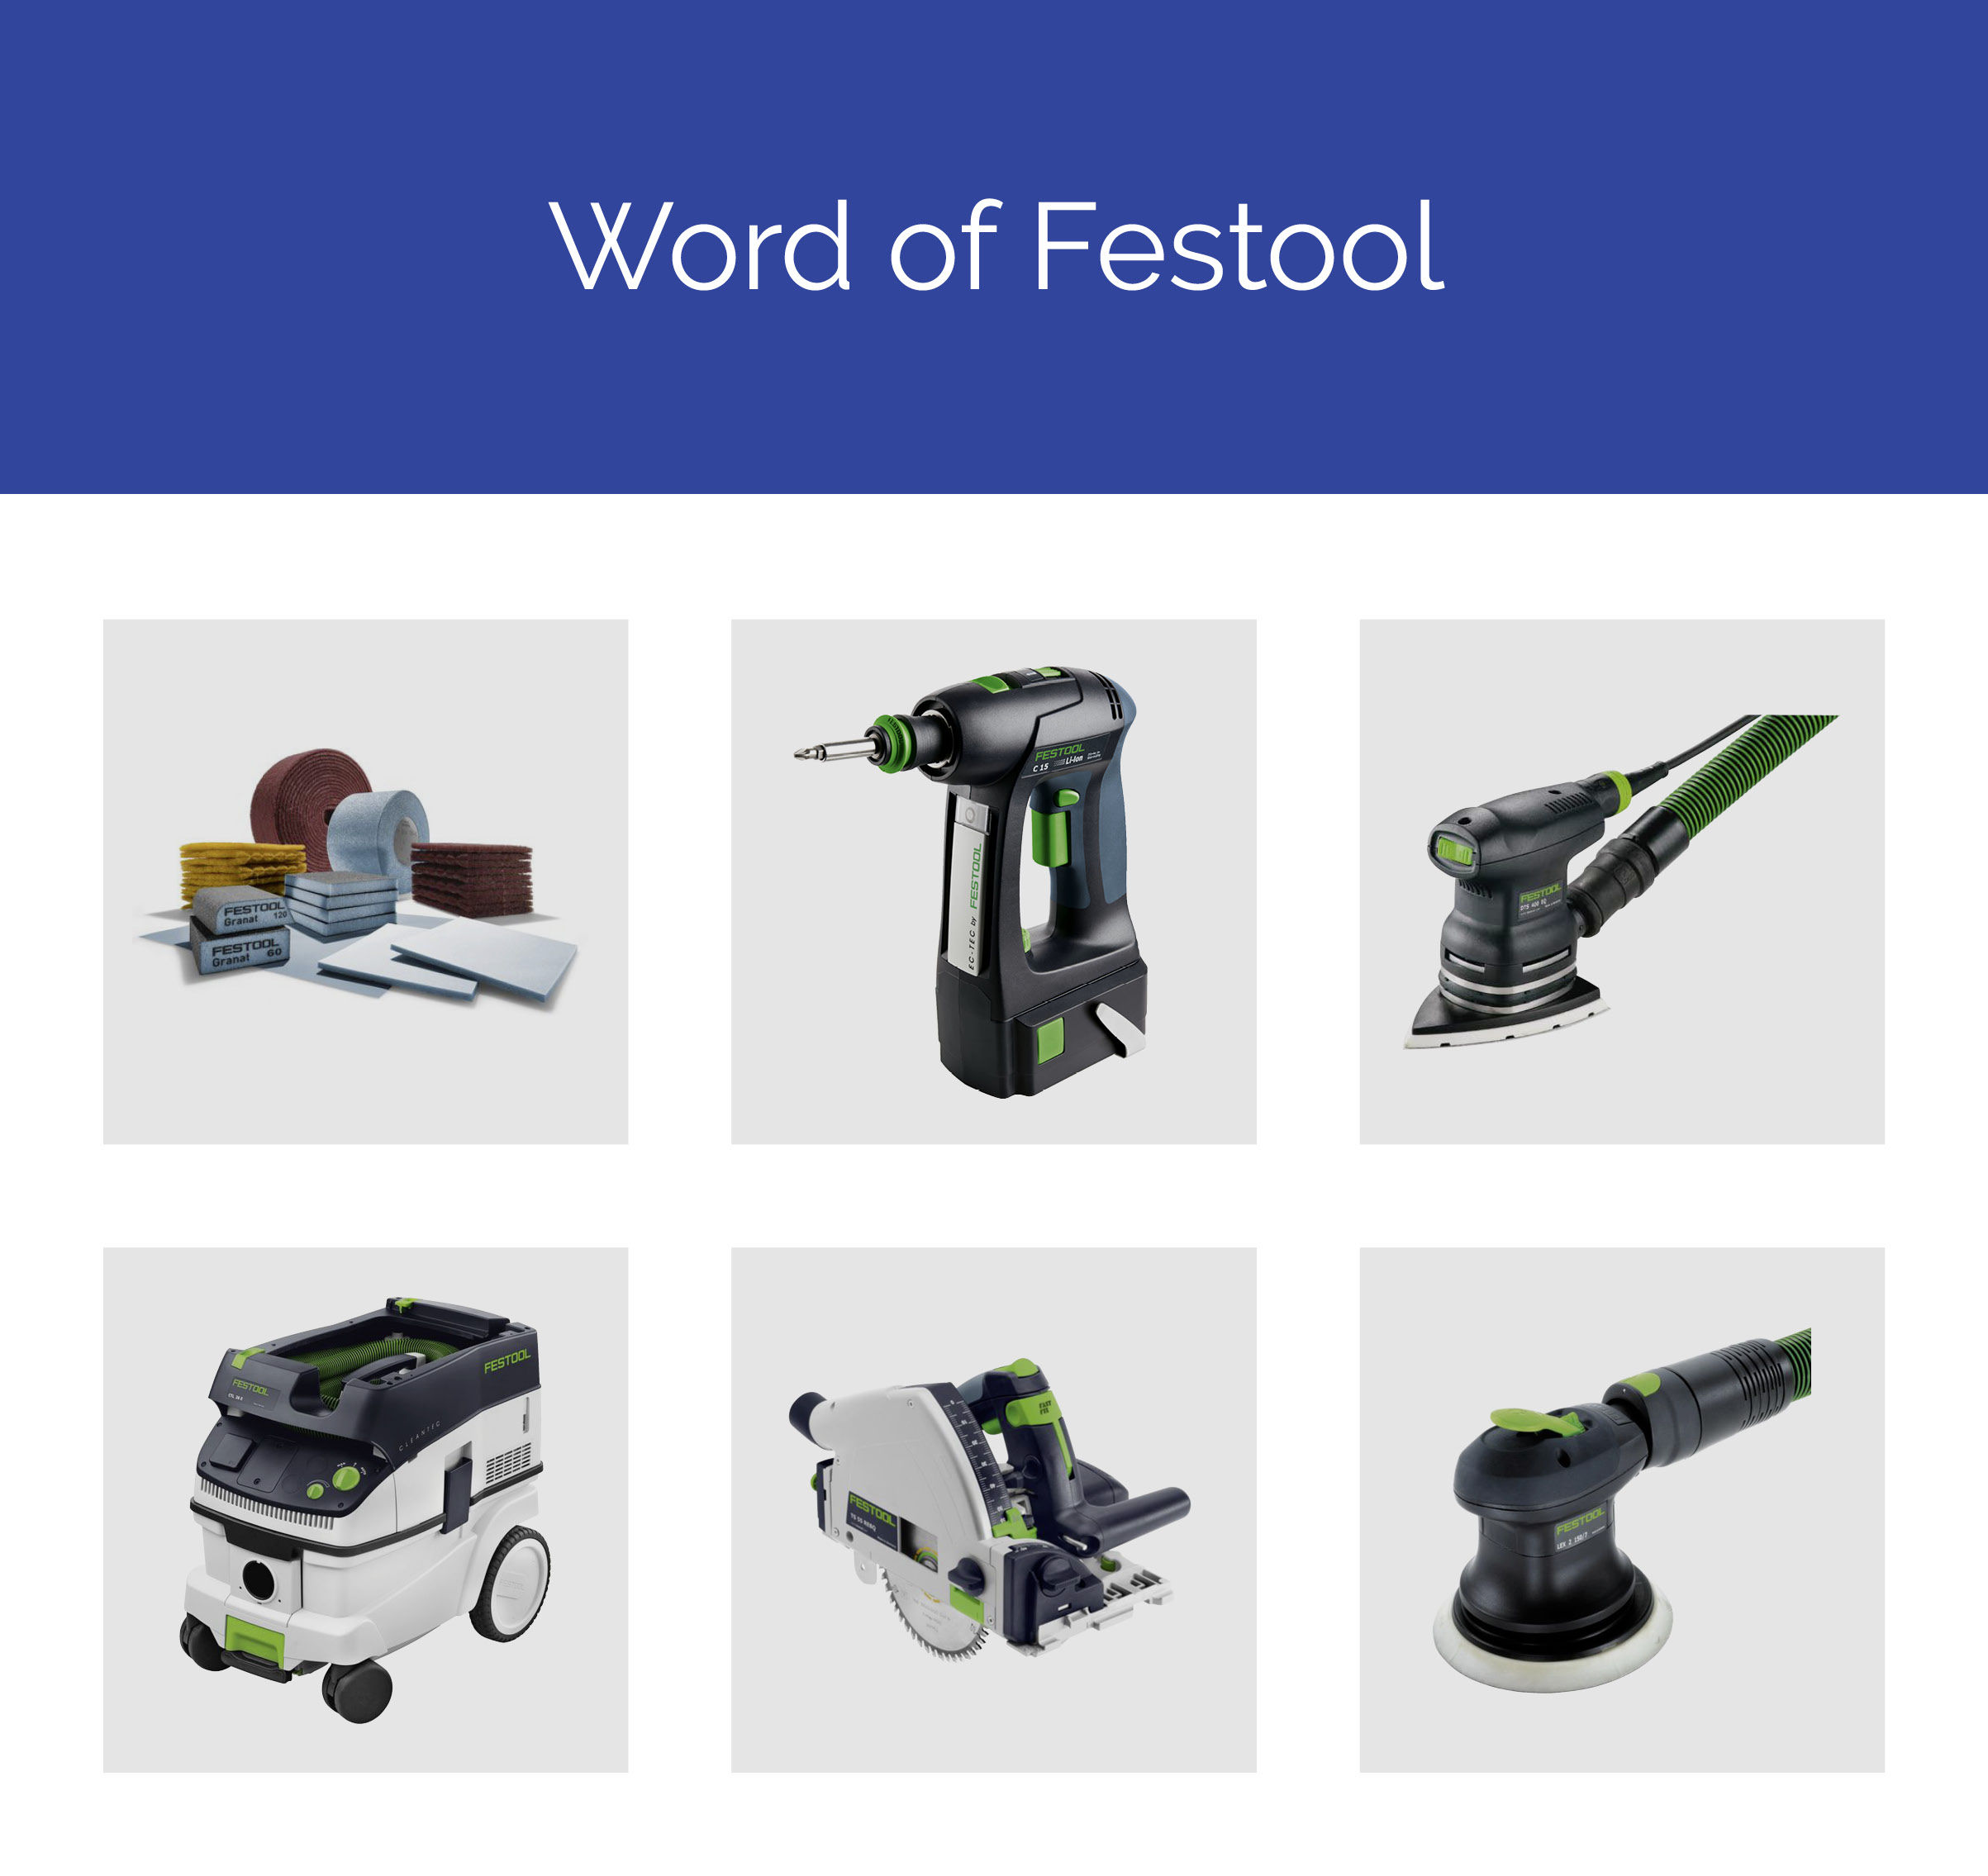 World of Festool